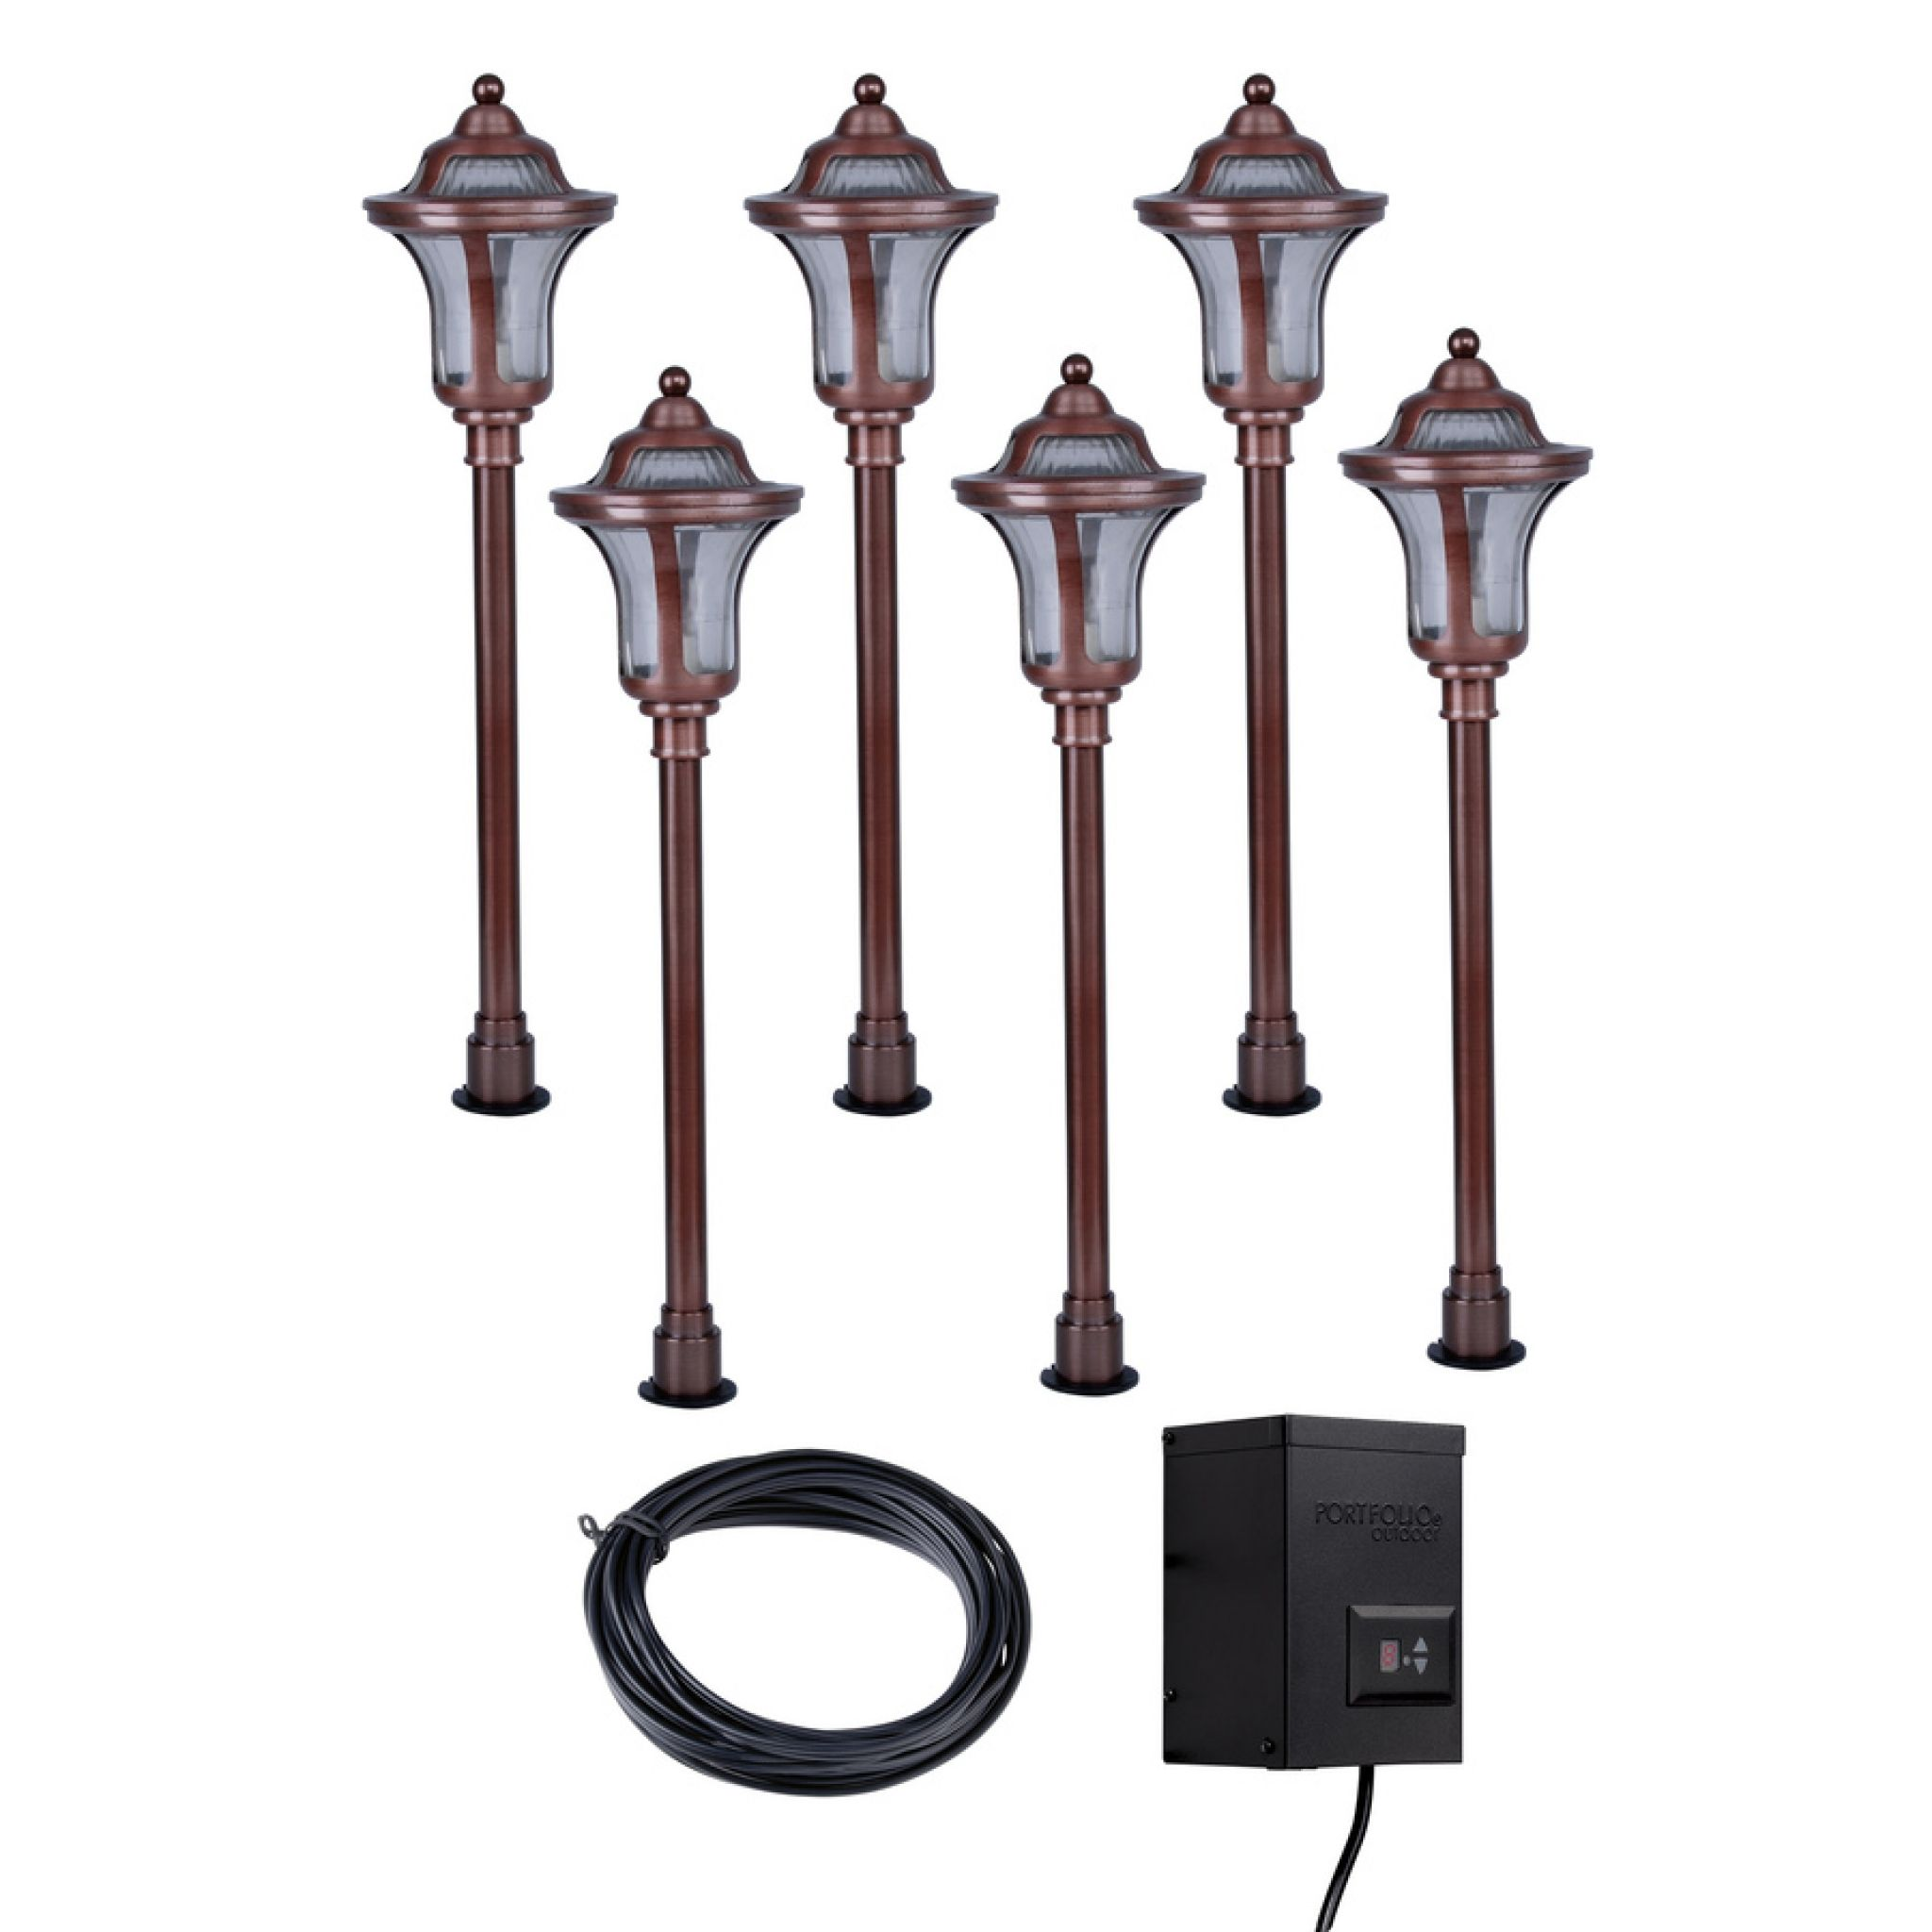 Low voltage led outdoor lighting kits best paint for for Low voltage led patio lights